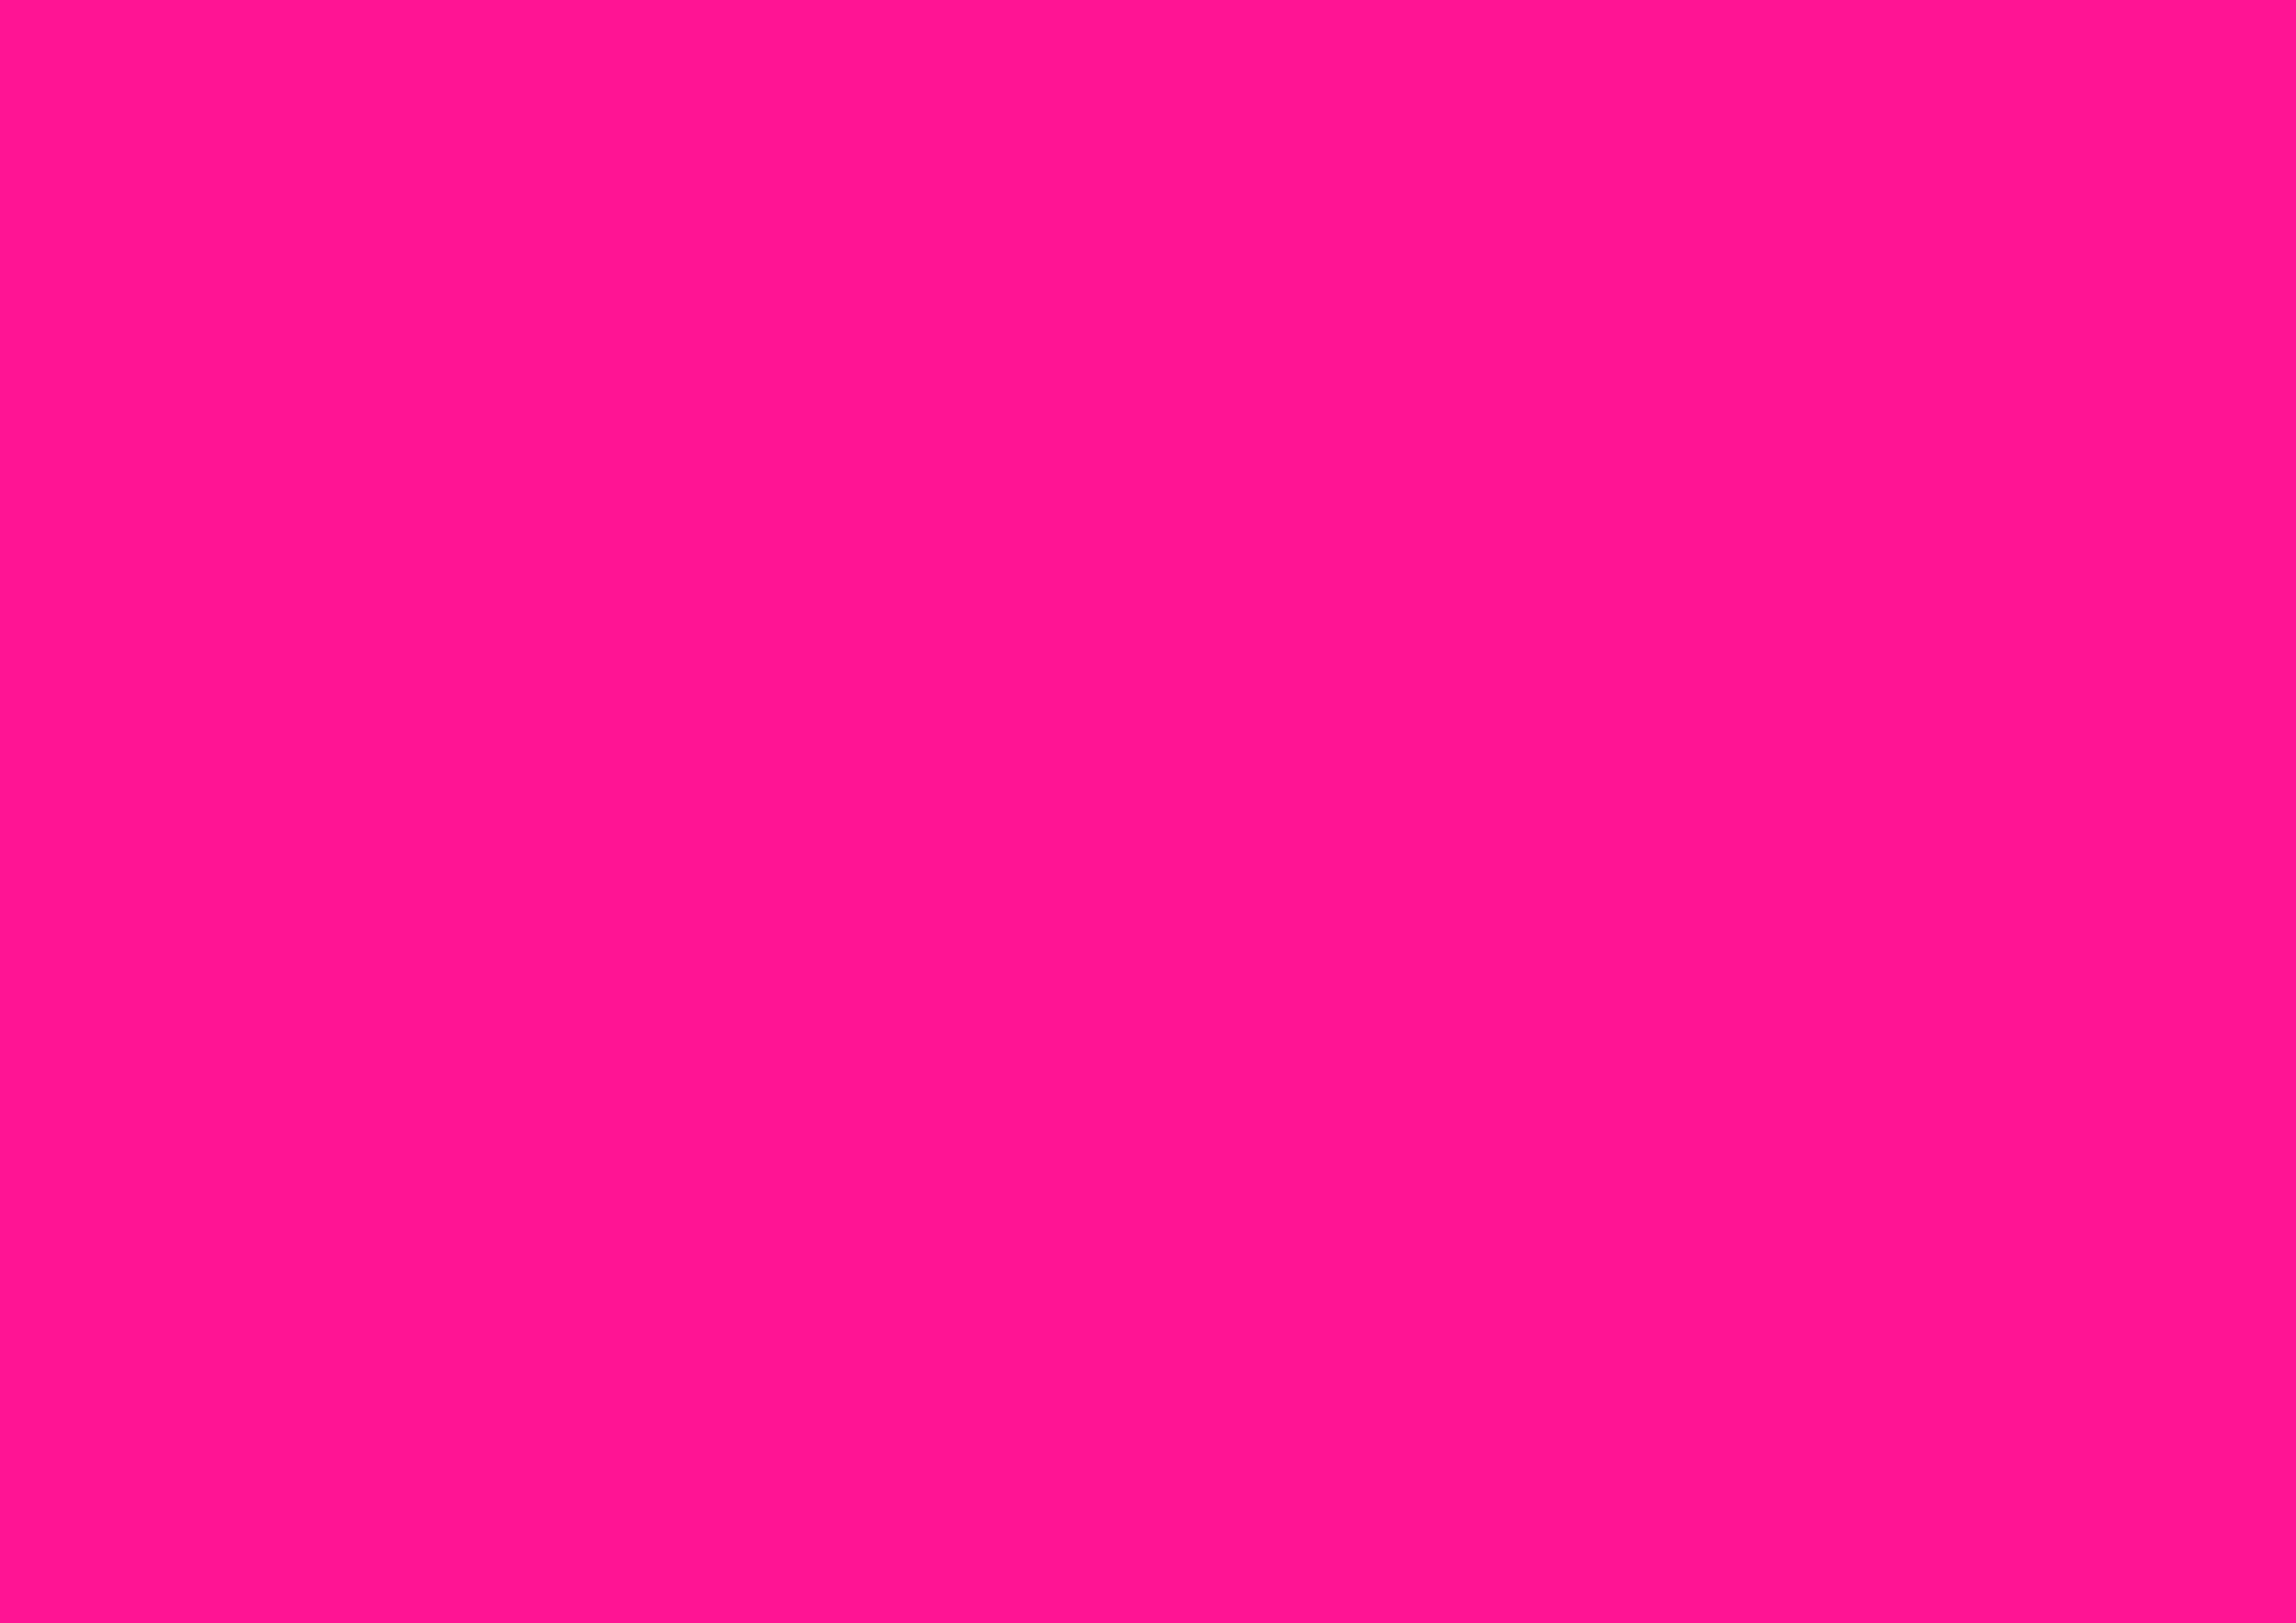 3508x2480 Fluorescent Pink Solid Color Background